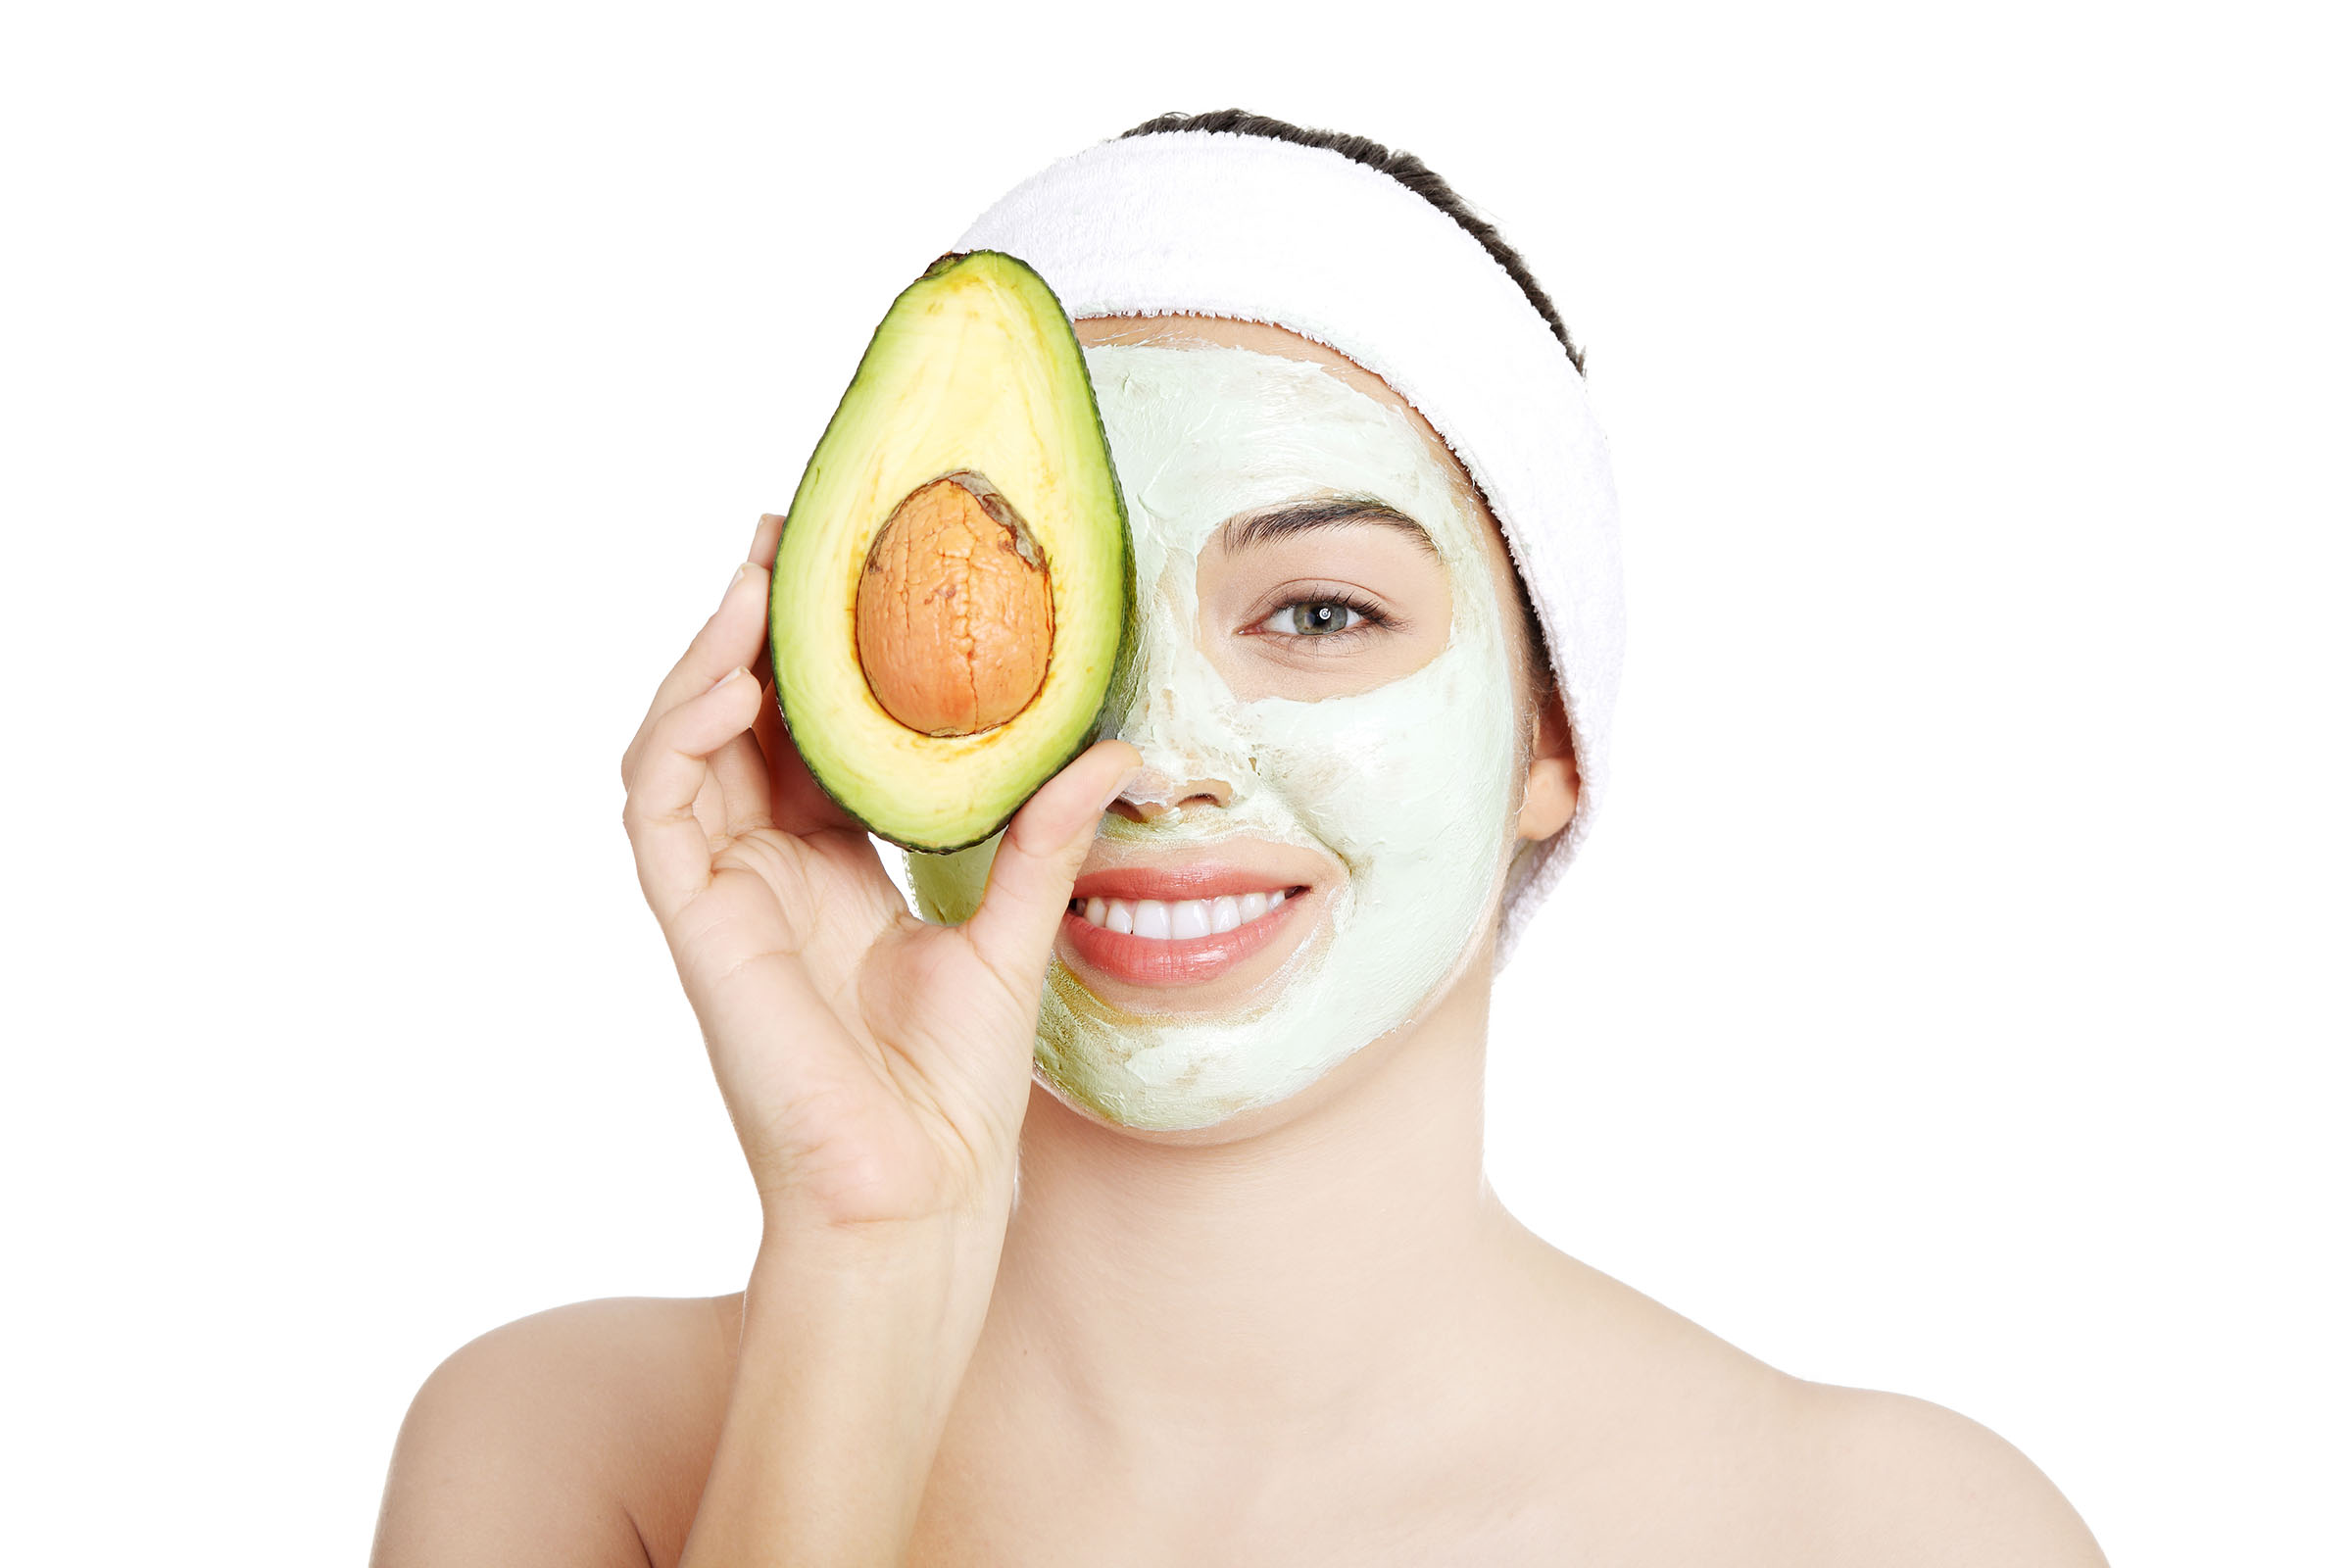 Young woman with an avocado-based face mask on her face